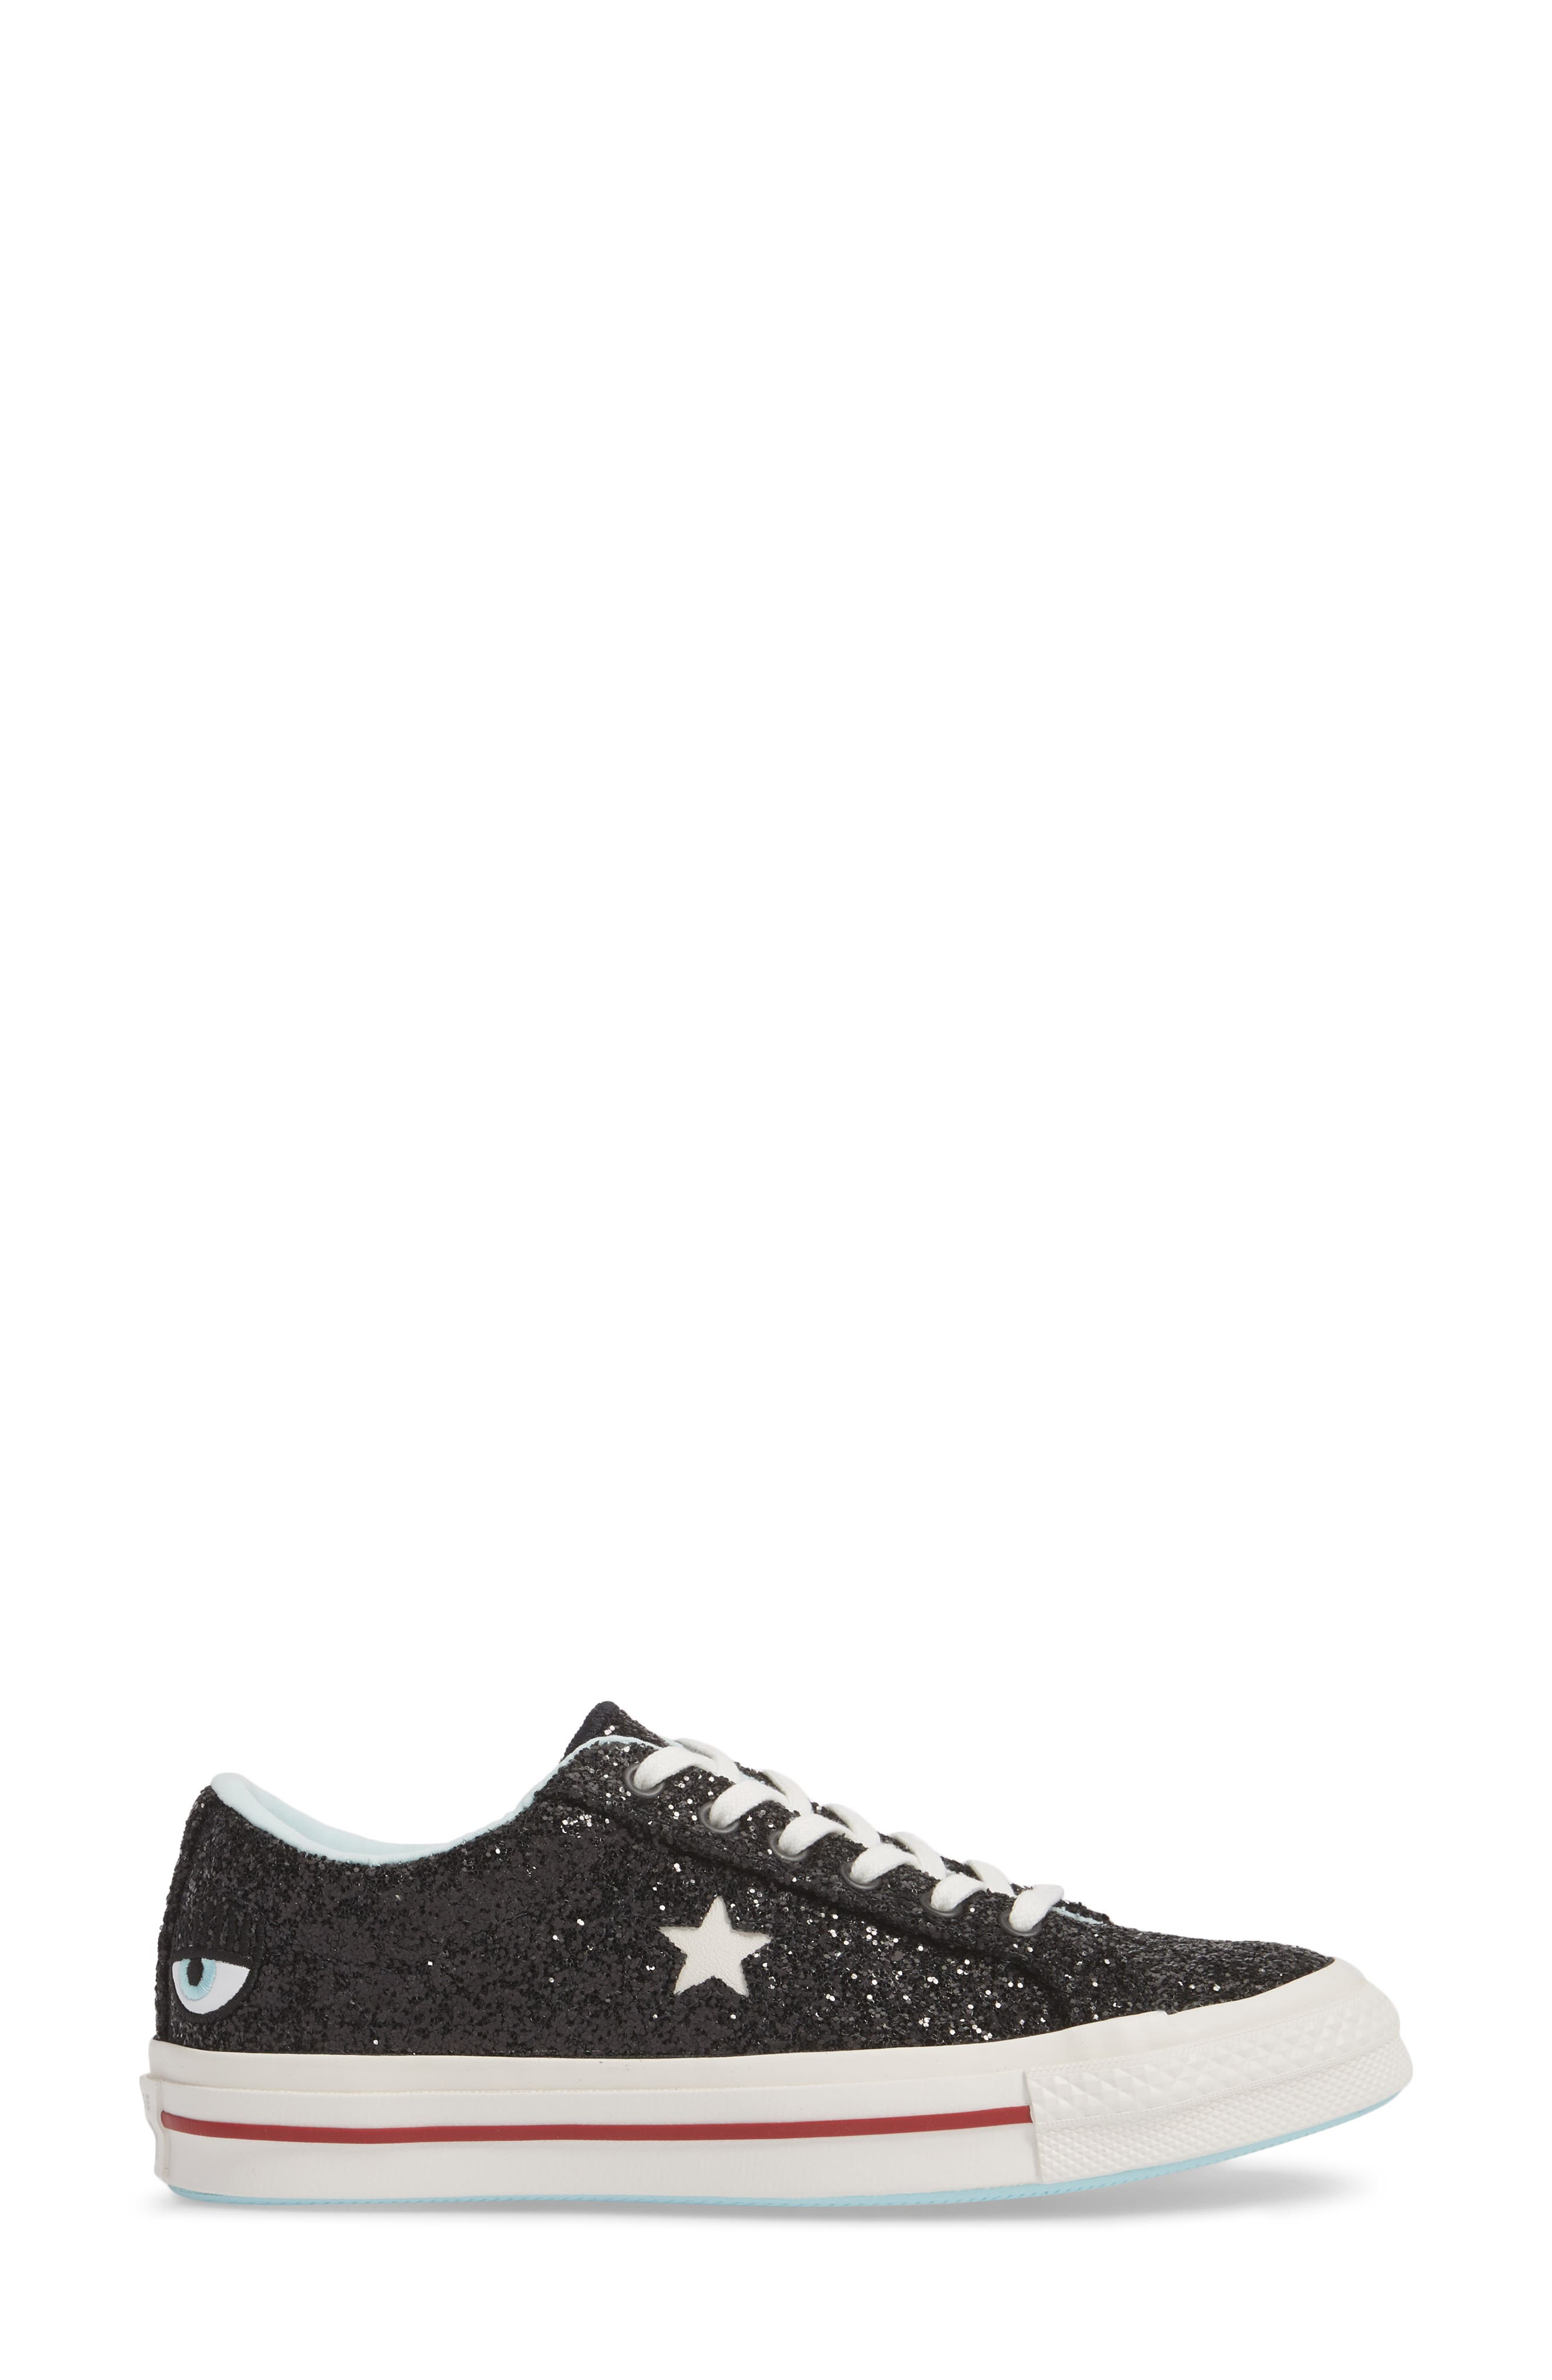 x Chiara Ferragni One Star Ox Sneaker,                             Alternate thumbnail 3, color,                             001